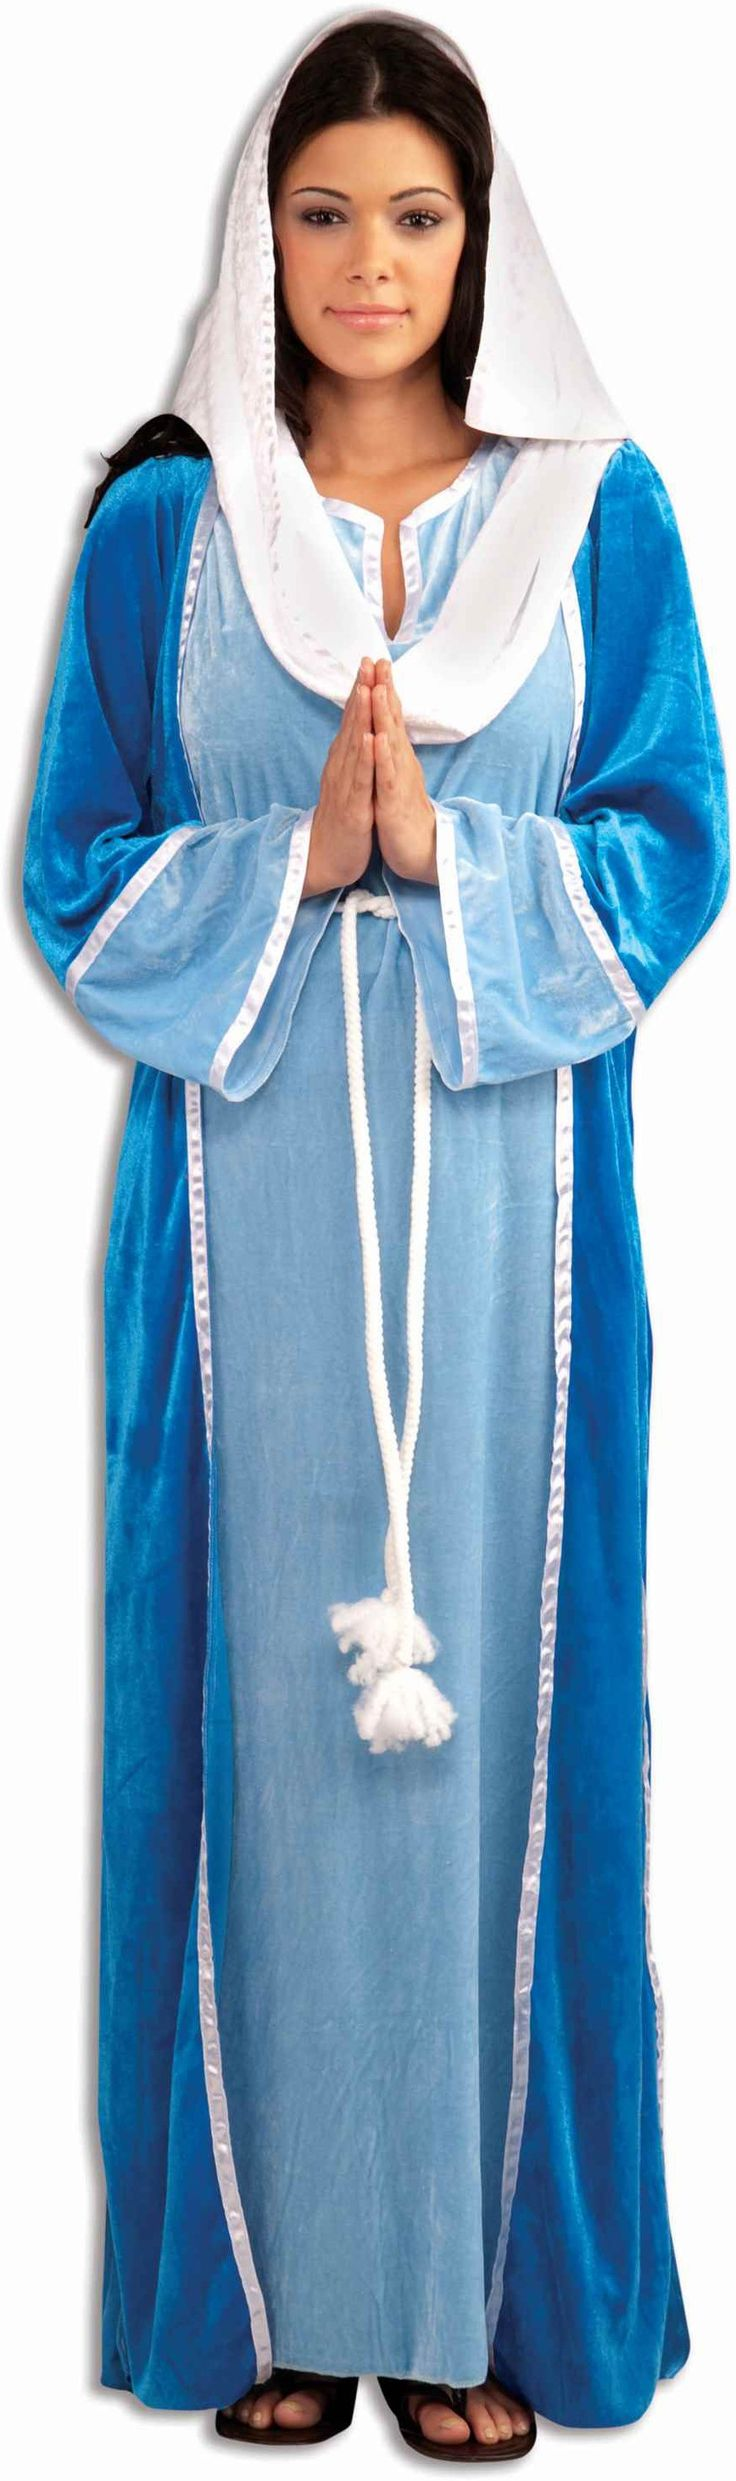 Mary Adult Costume One Size - Perfect for your next Nativity play. Includes: Blue floor length gown and robe with attached headpiece. | Costumes.com.au